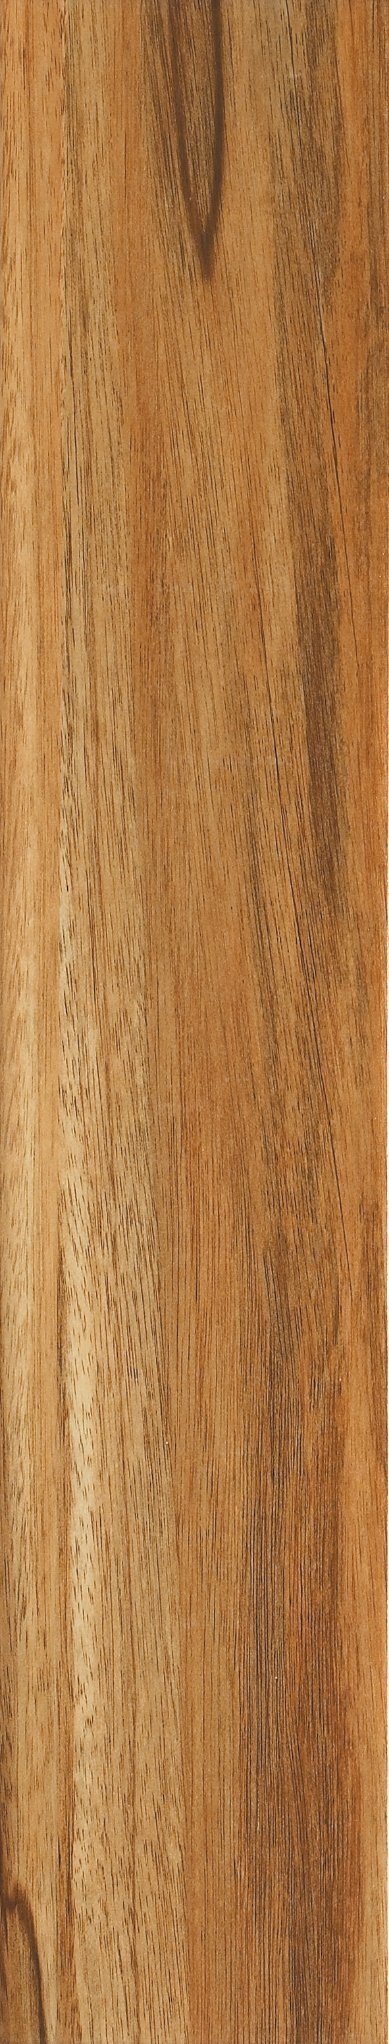 Mf815217 Wooden Pattern Floor Tile Living-Room/Kitchen Floor Tile Antique/ Rustic Surface